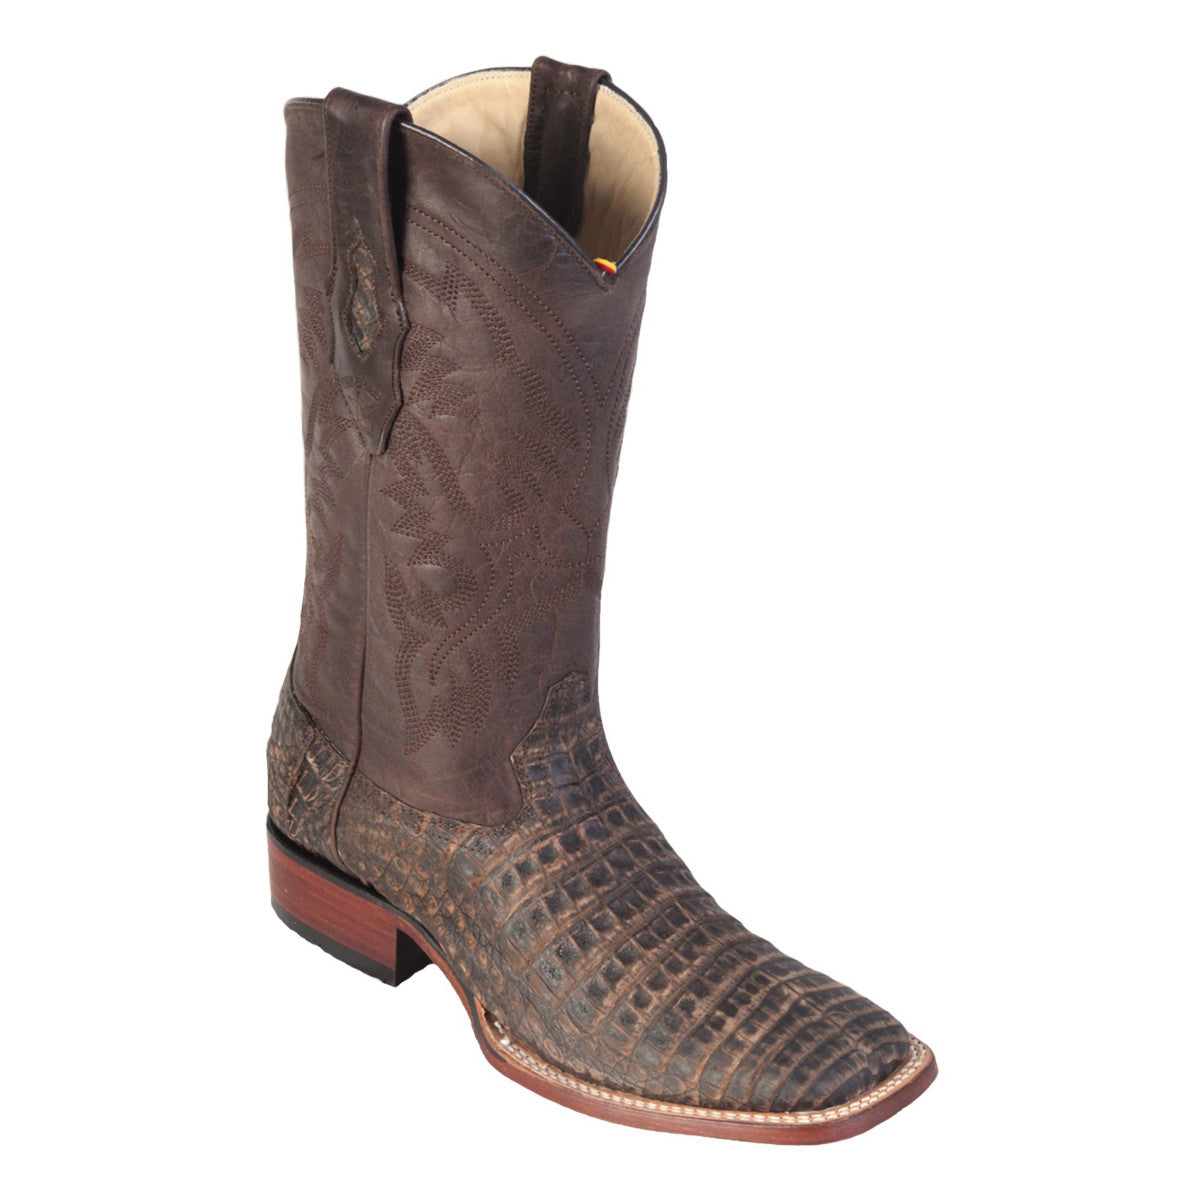 Los Altos Boots Wide Square Toe Caiman Belly